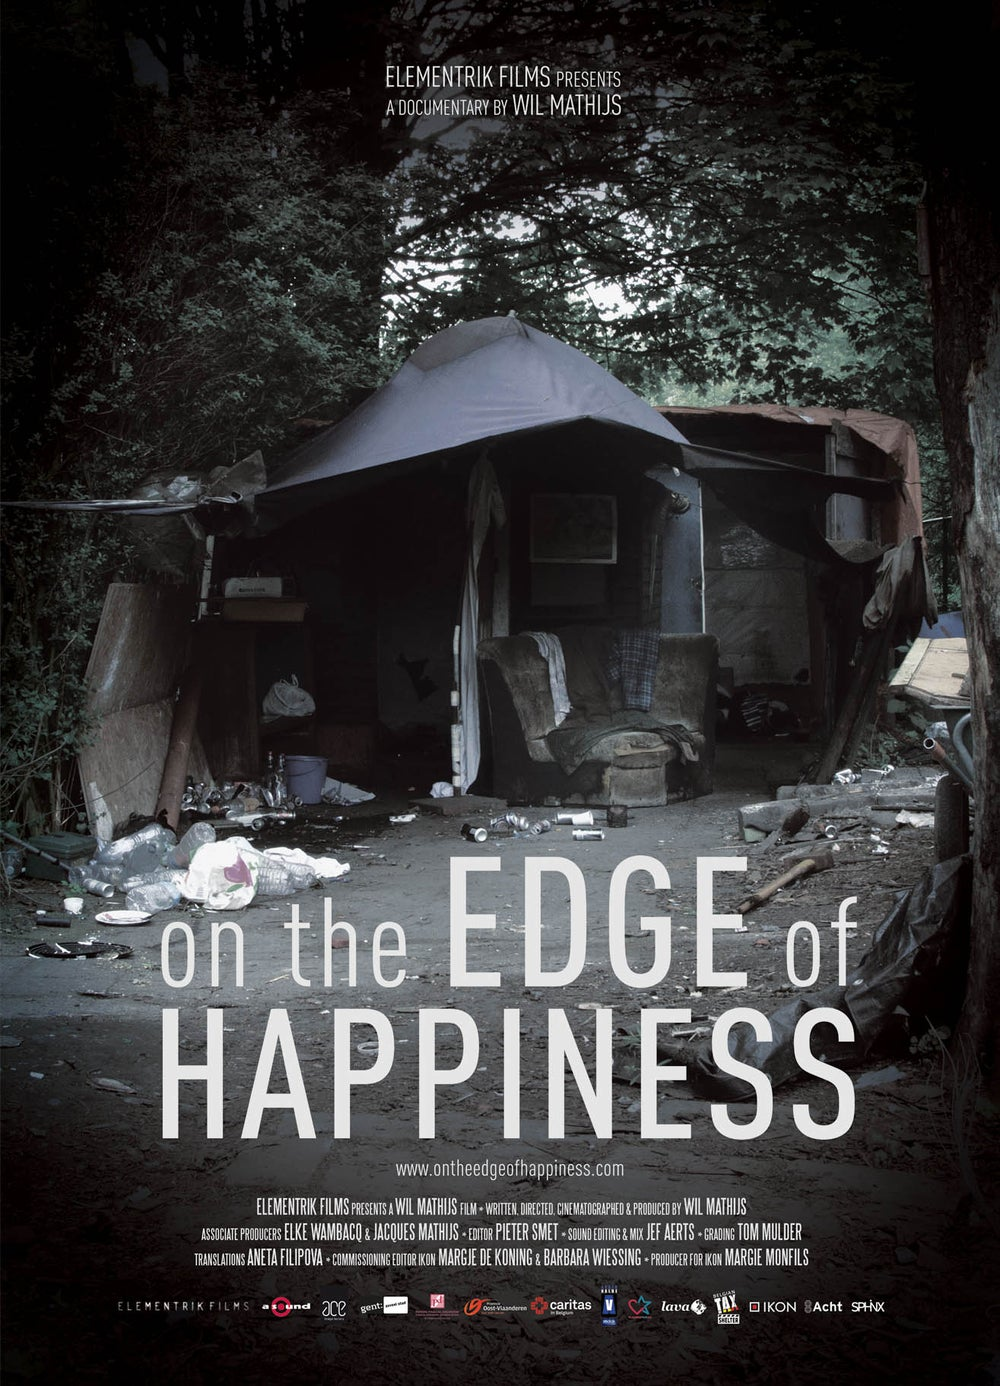 Image of ON THE EDGE OF HAPPINESS_POSTER A2_LTD ED. 100 EX.